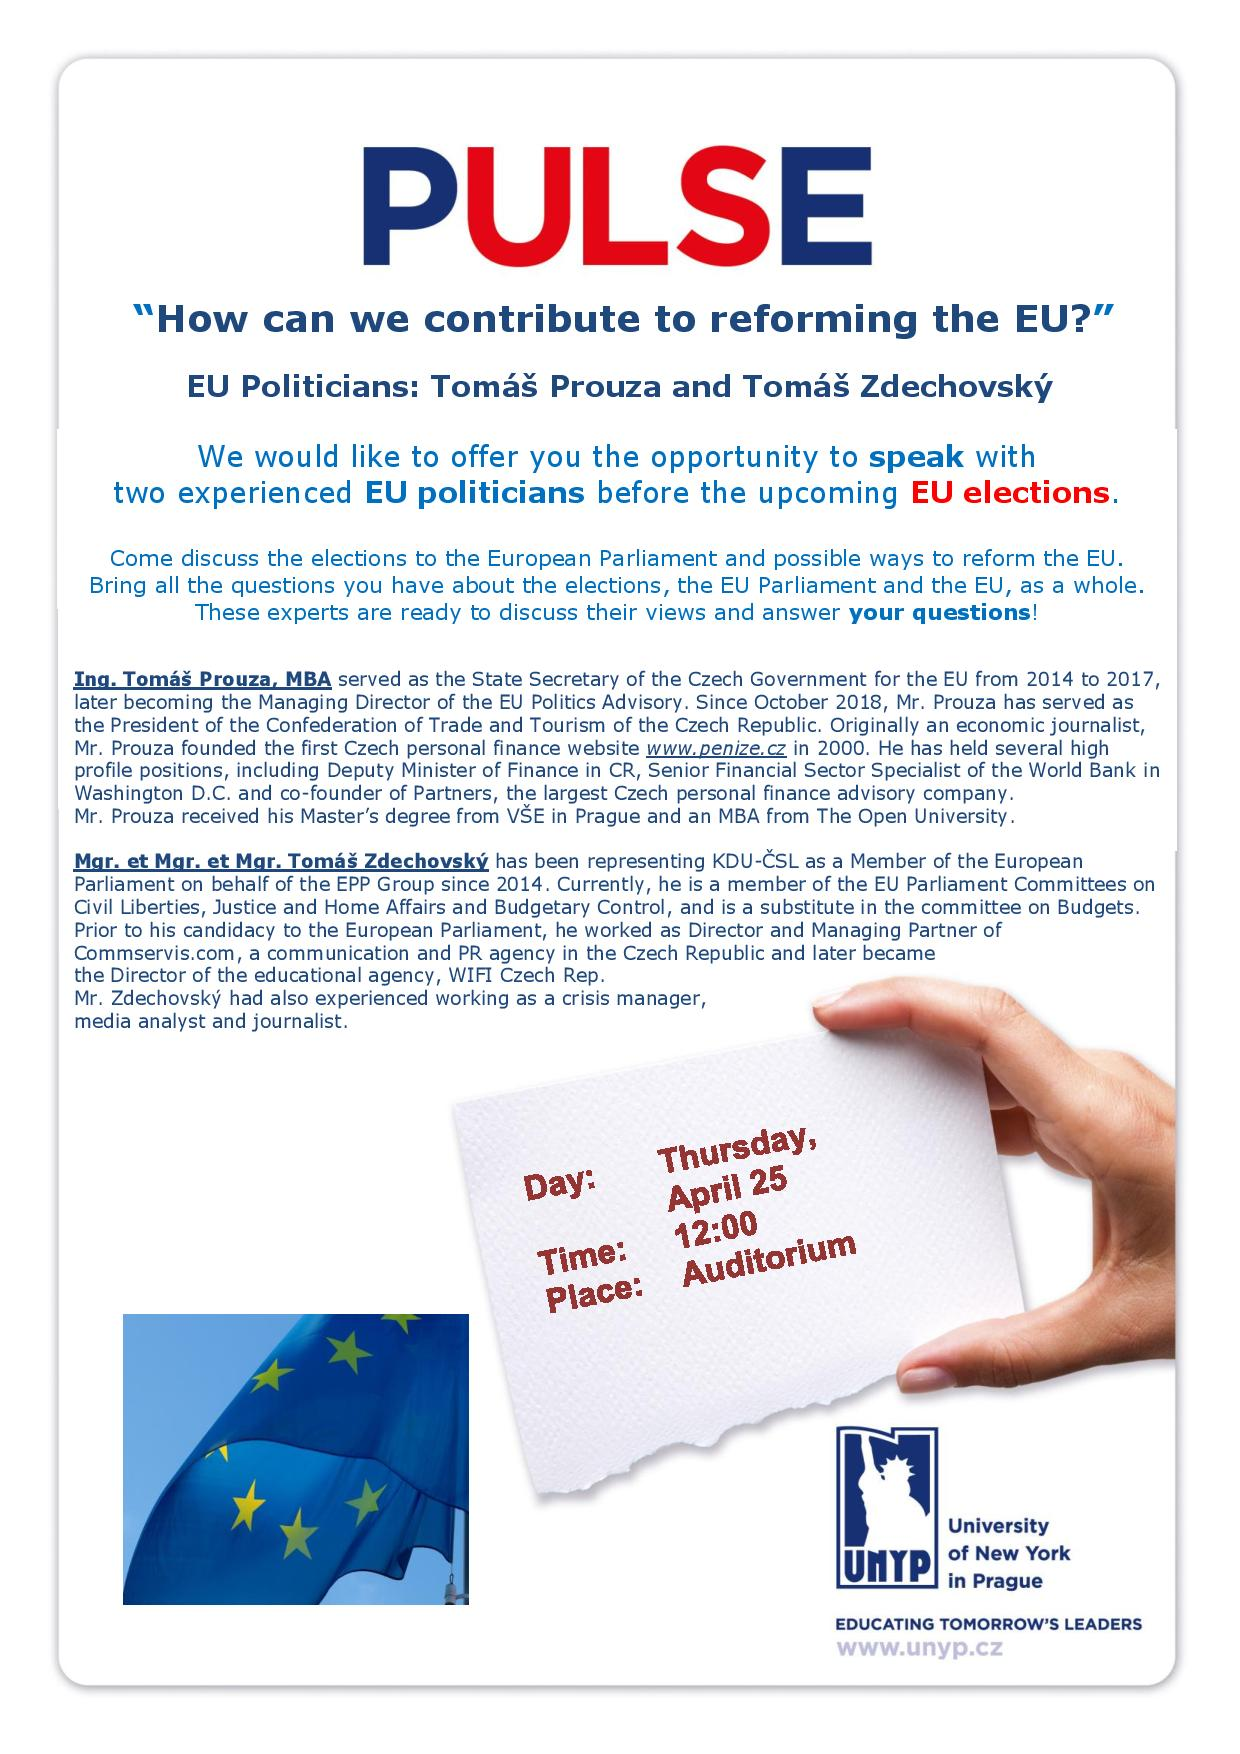 PULSE lecture - How can we contribute to reforming the EU? 25.4.19, 12:00